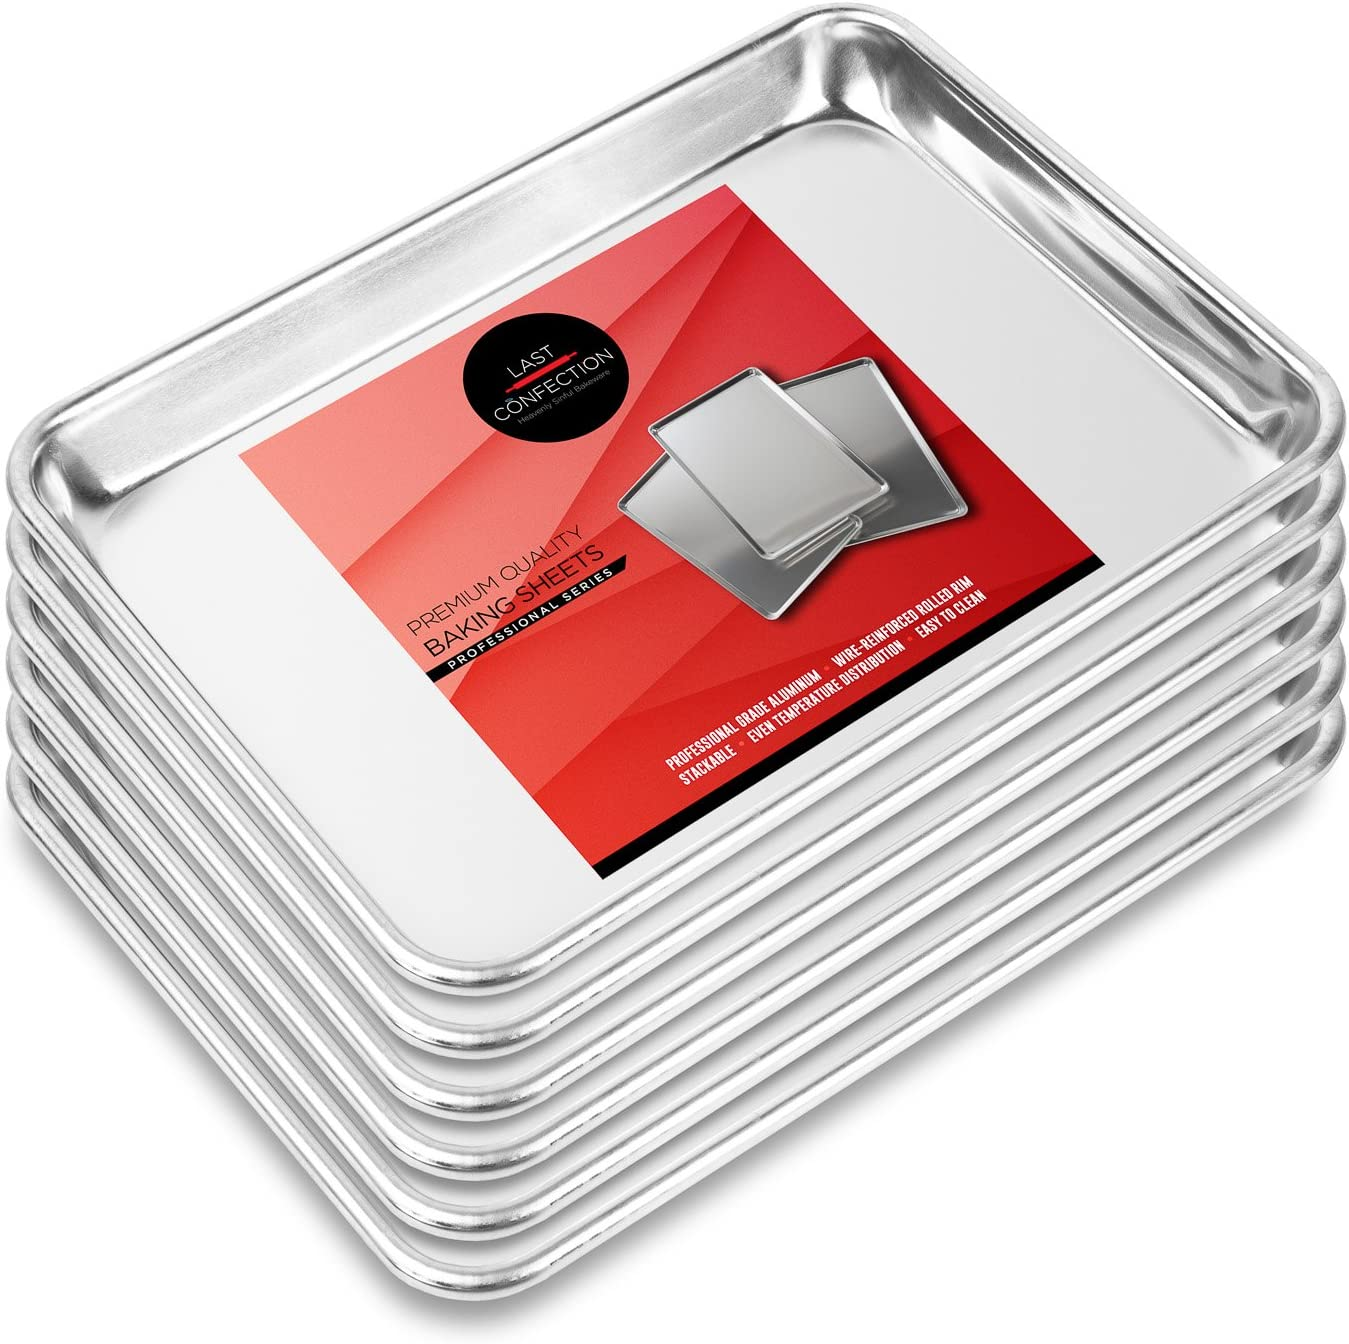 "Last Confection 6 Cookie Baking Sheets 9"" x 13"" - Small Rimmed Aluminum Jelly Roll Trays - Quarter Sheet Pans"